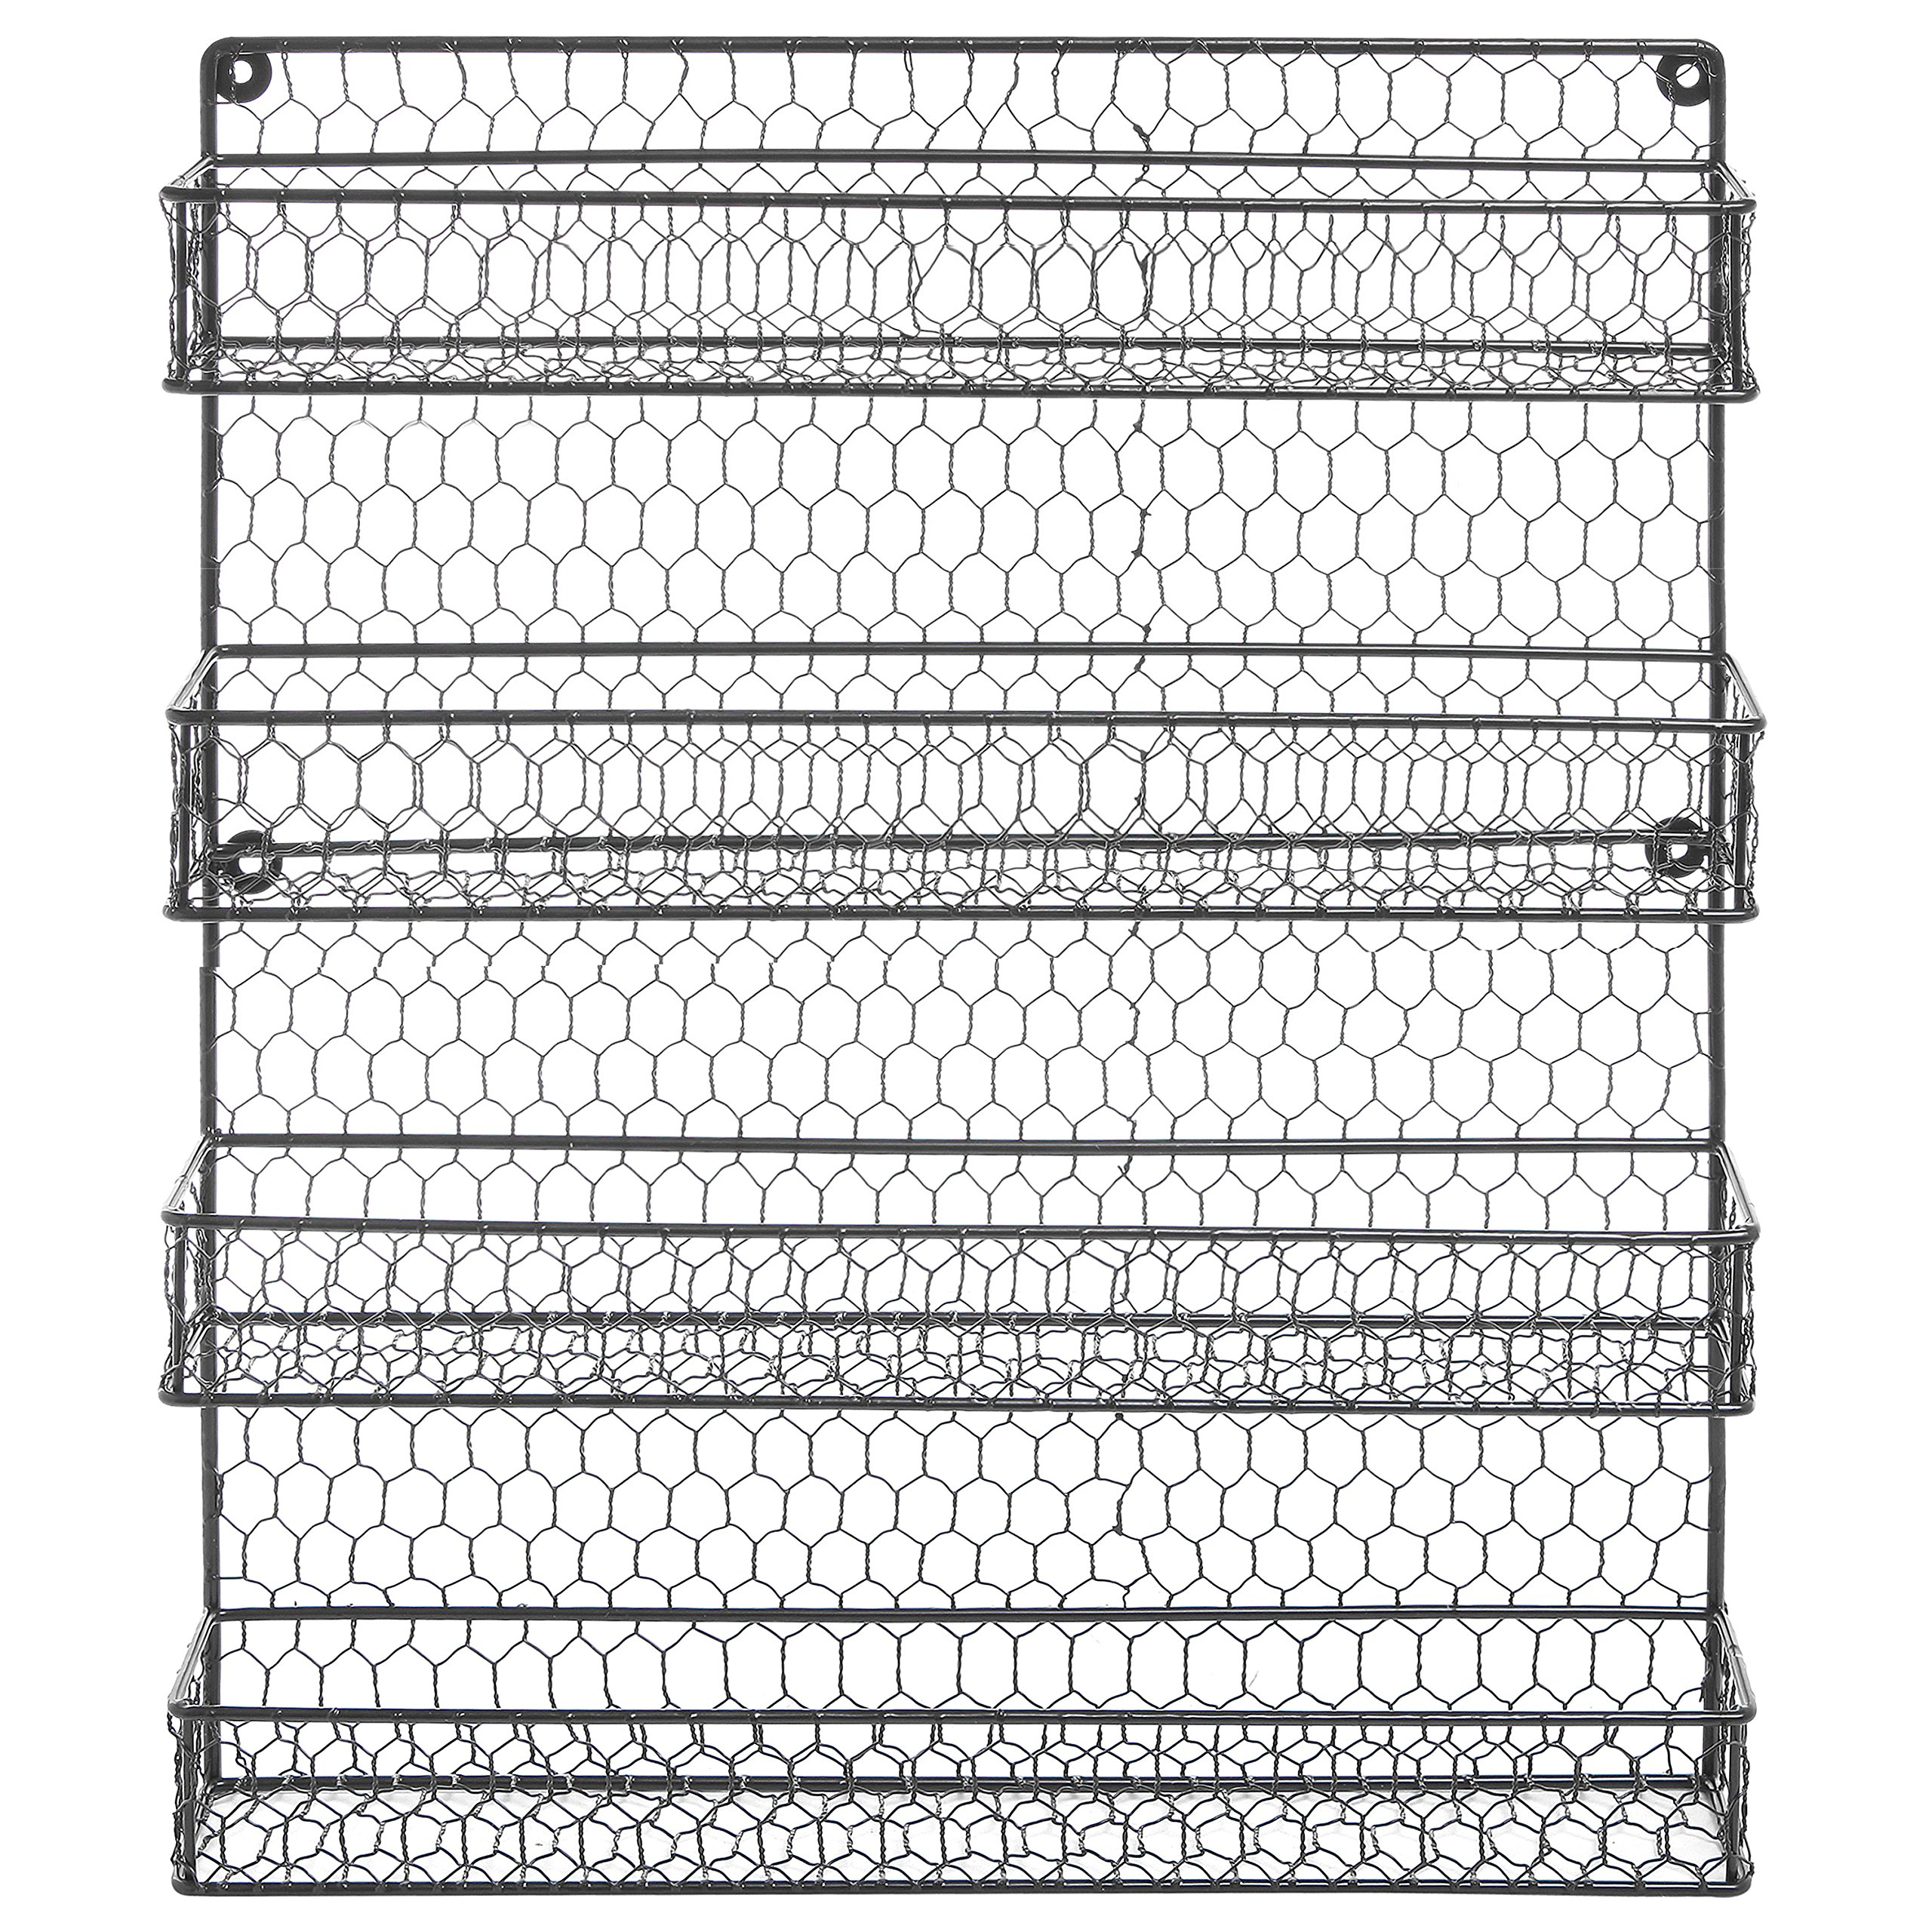 4 Tier Black Country Rustic Chicken Wire Pantry, Cabinet or Wall Mounted Spice Rack Storage Organizer by MyGift (Image #4)